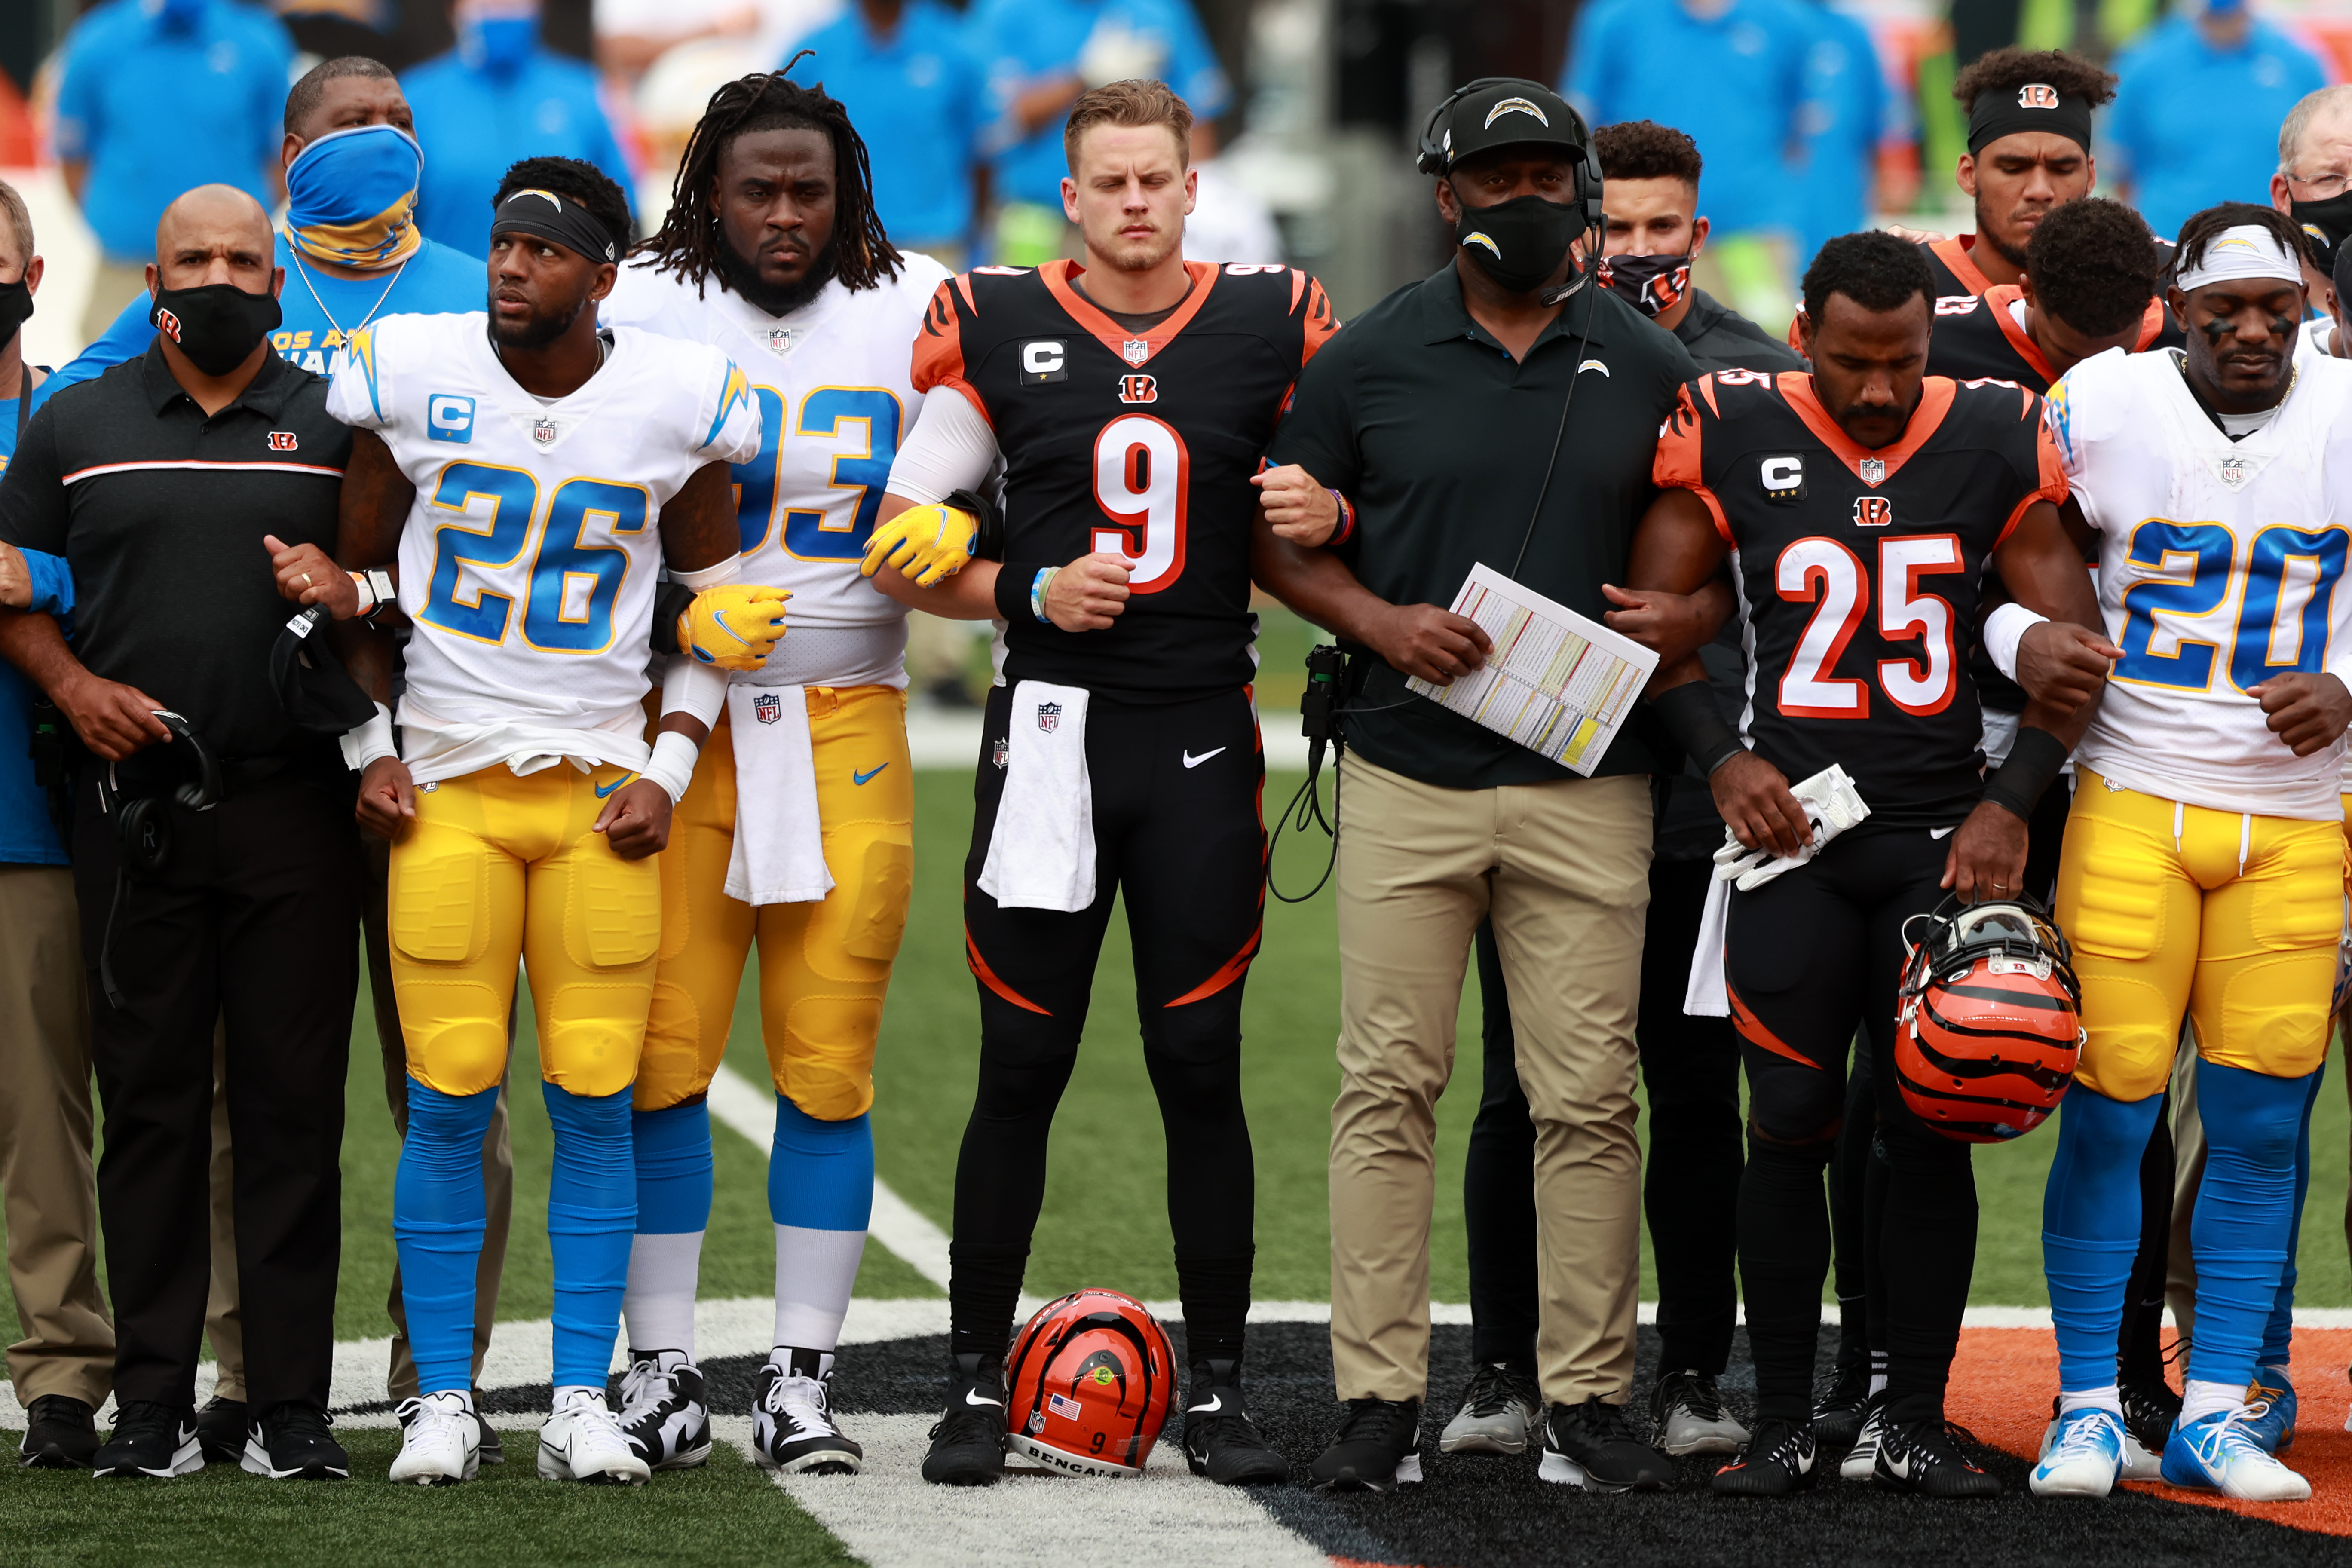 CINCINNATI, OHIO - SEPTEMBER 13: Quarterback Joe Burrow #9 of the Cincinnati Bengals, teammates and the Los Angeles Chargers stand in unity during the U.S. National Anthem at Paul Brown Stadium on September 13, 2020 in Cincinnati, Ohio. The NFL began their 2020 season and the Bengals didn't allow fans in attendance due to the Covid-19 pandemic. (Photo by Bobby Ellis/Getty Images)